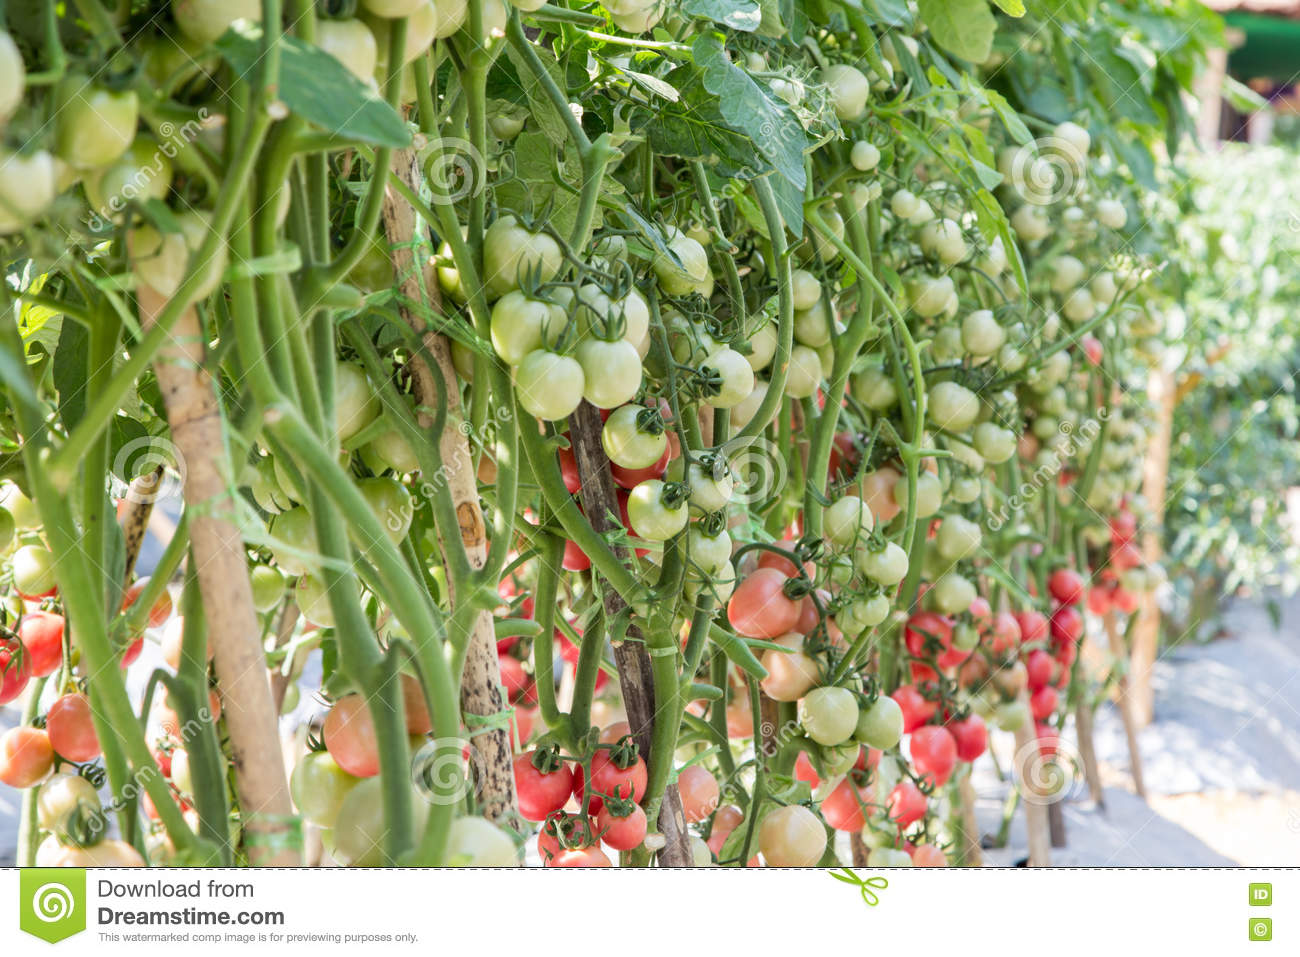 Ripe tomato ready to harvest in field